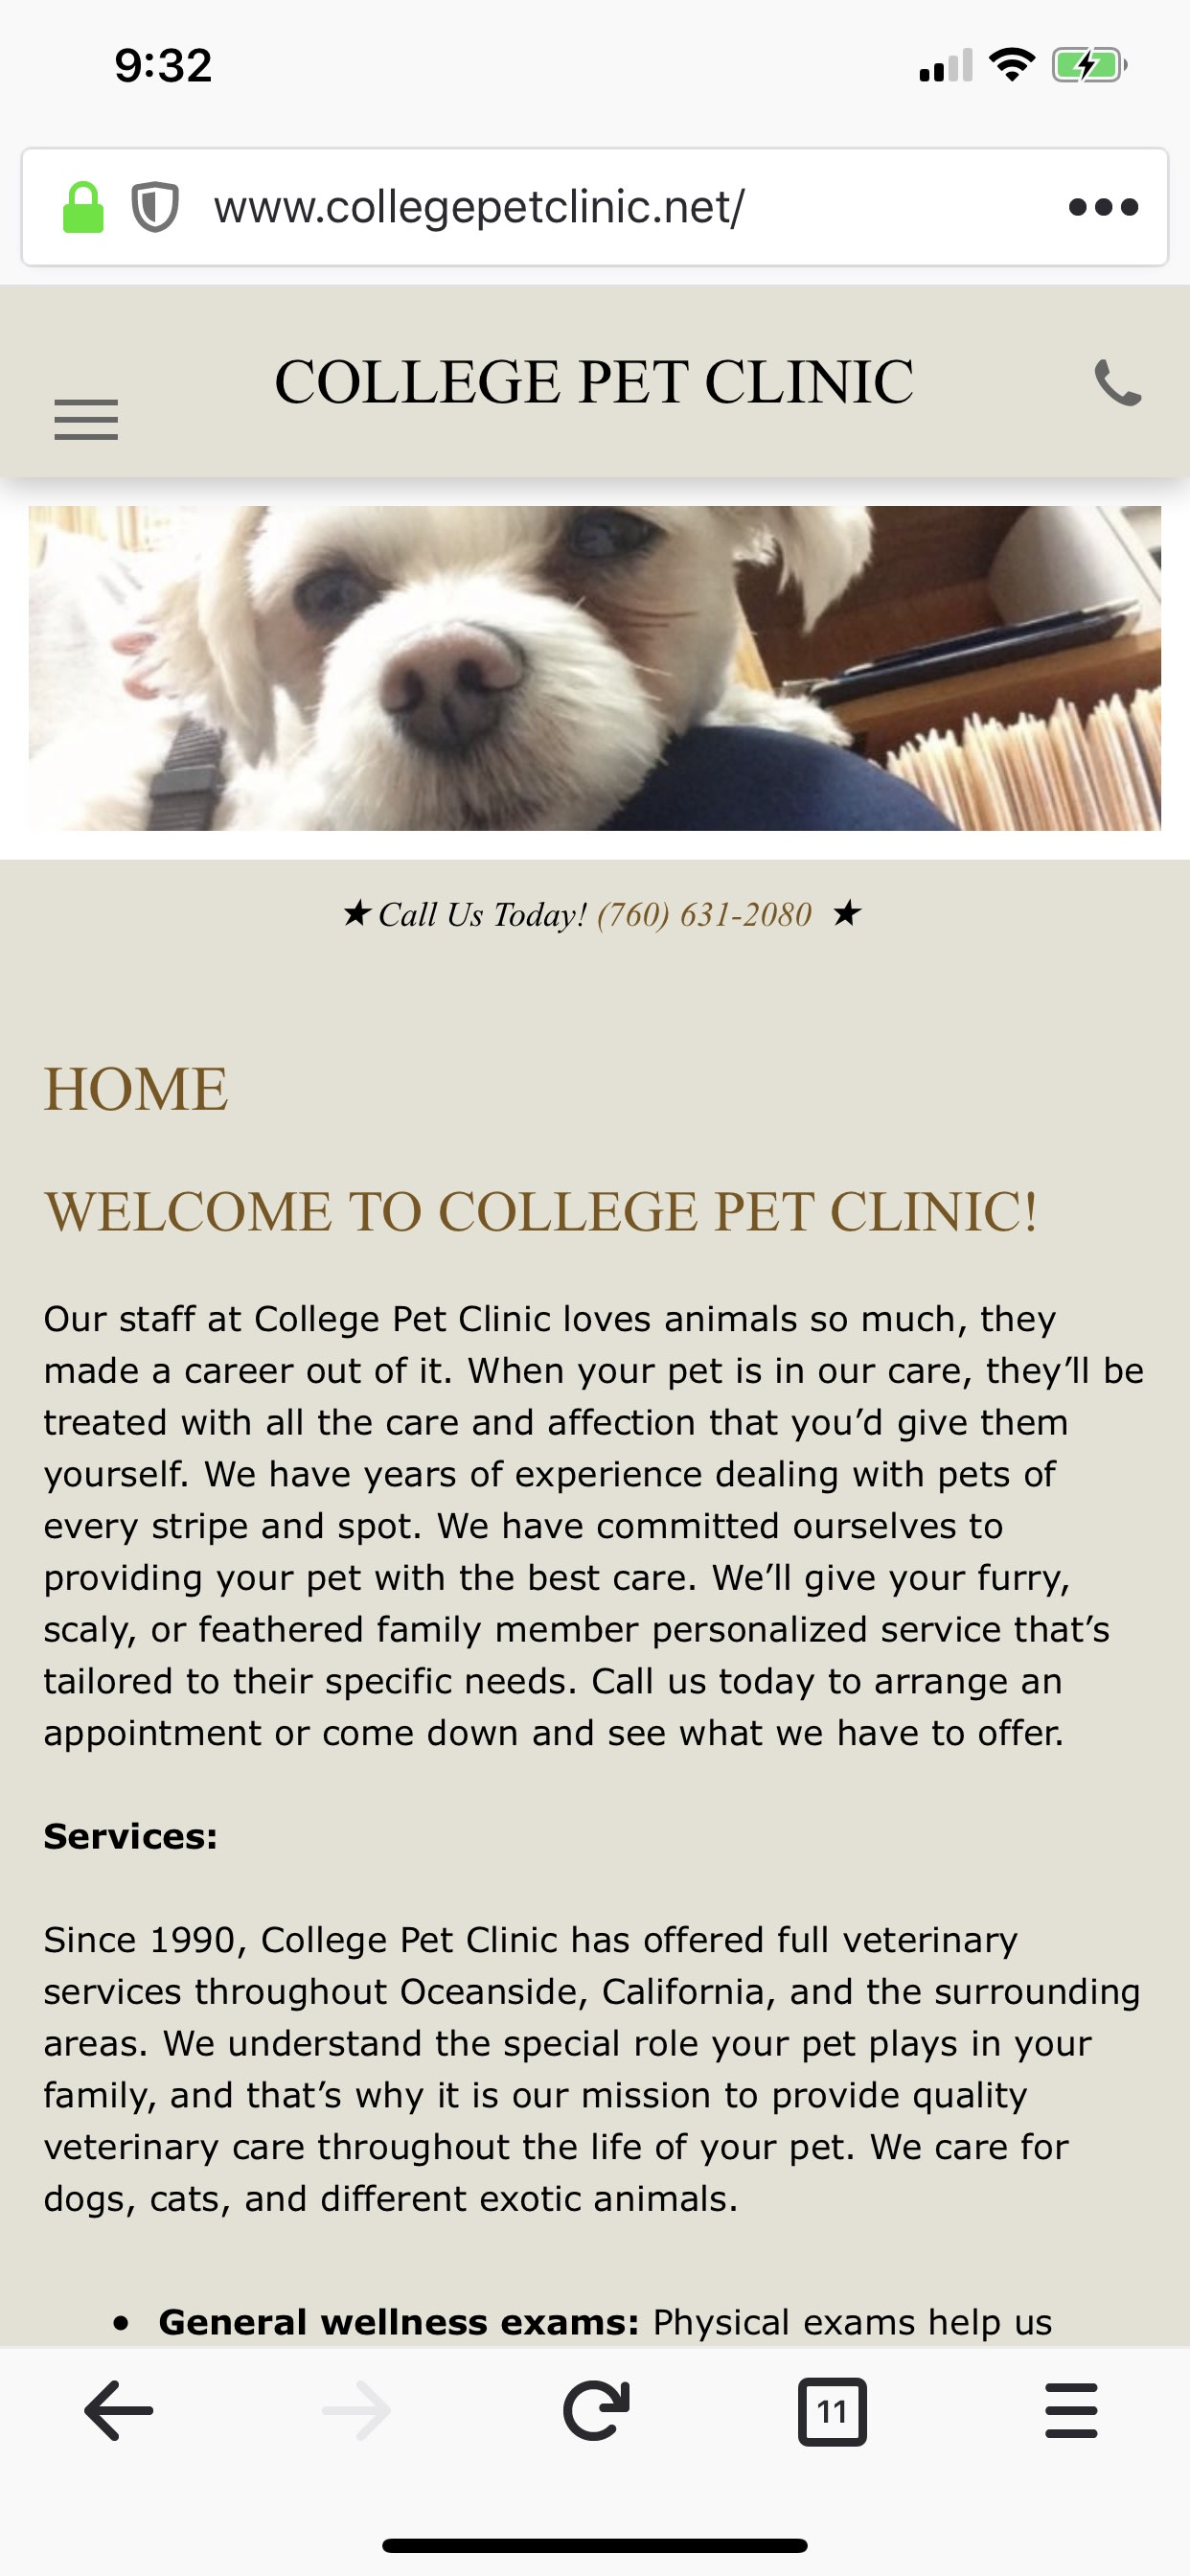 College Pet Clinic website and social